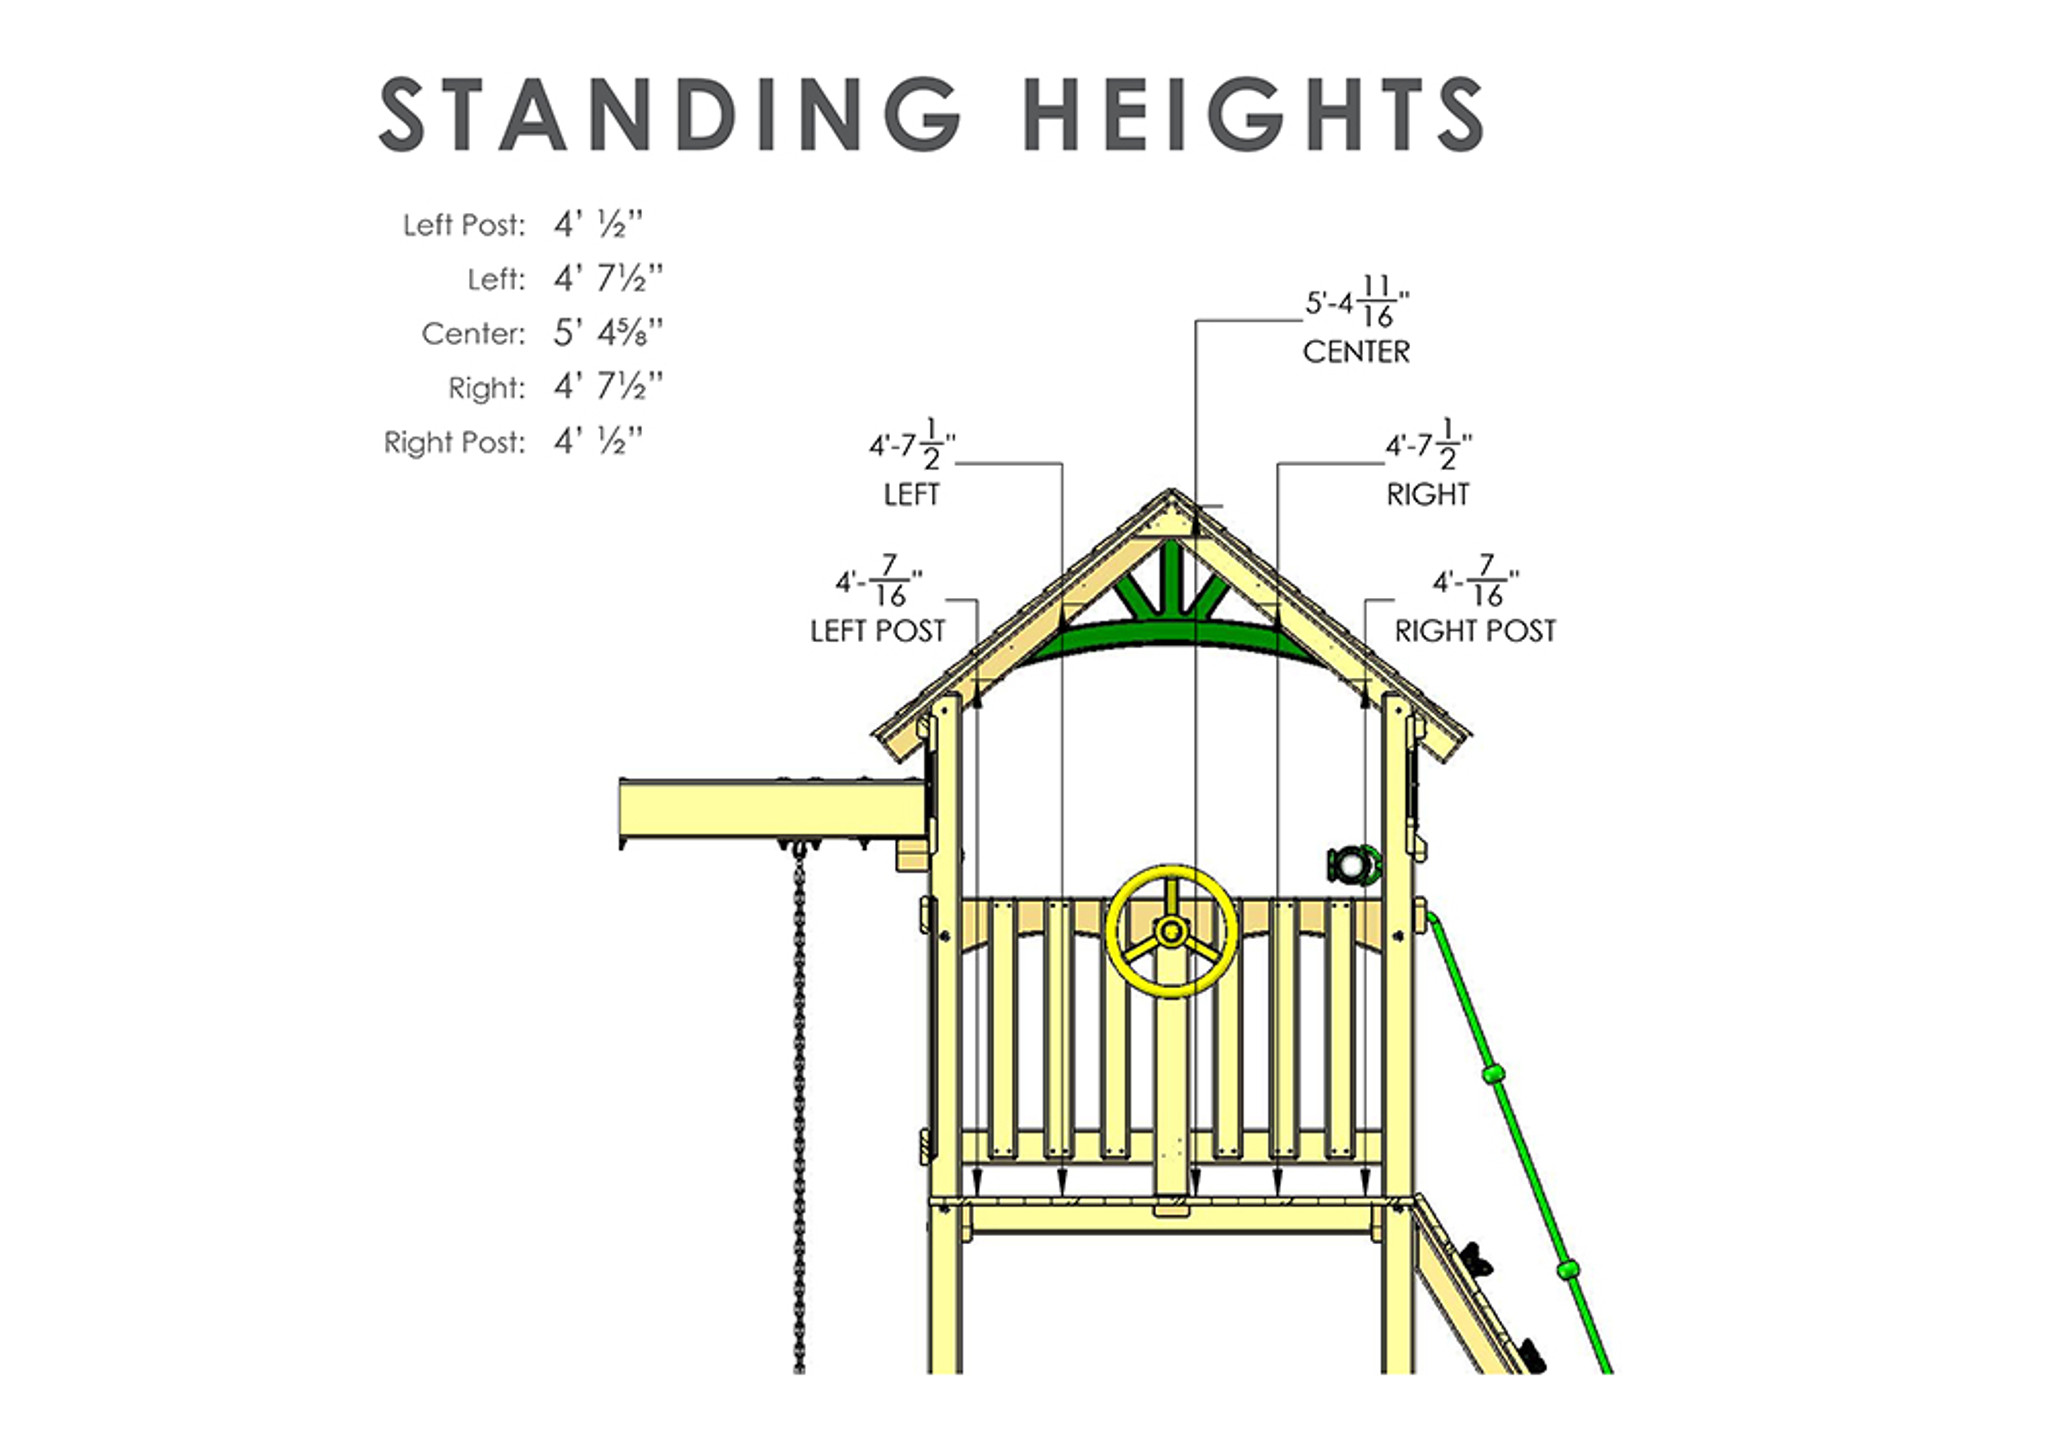 Wood Roof Standing Heights View of Passage II w/ Trapeze Bar Swingset from Playnation